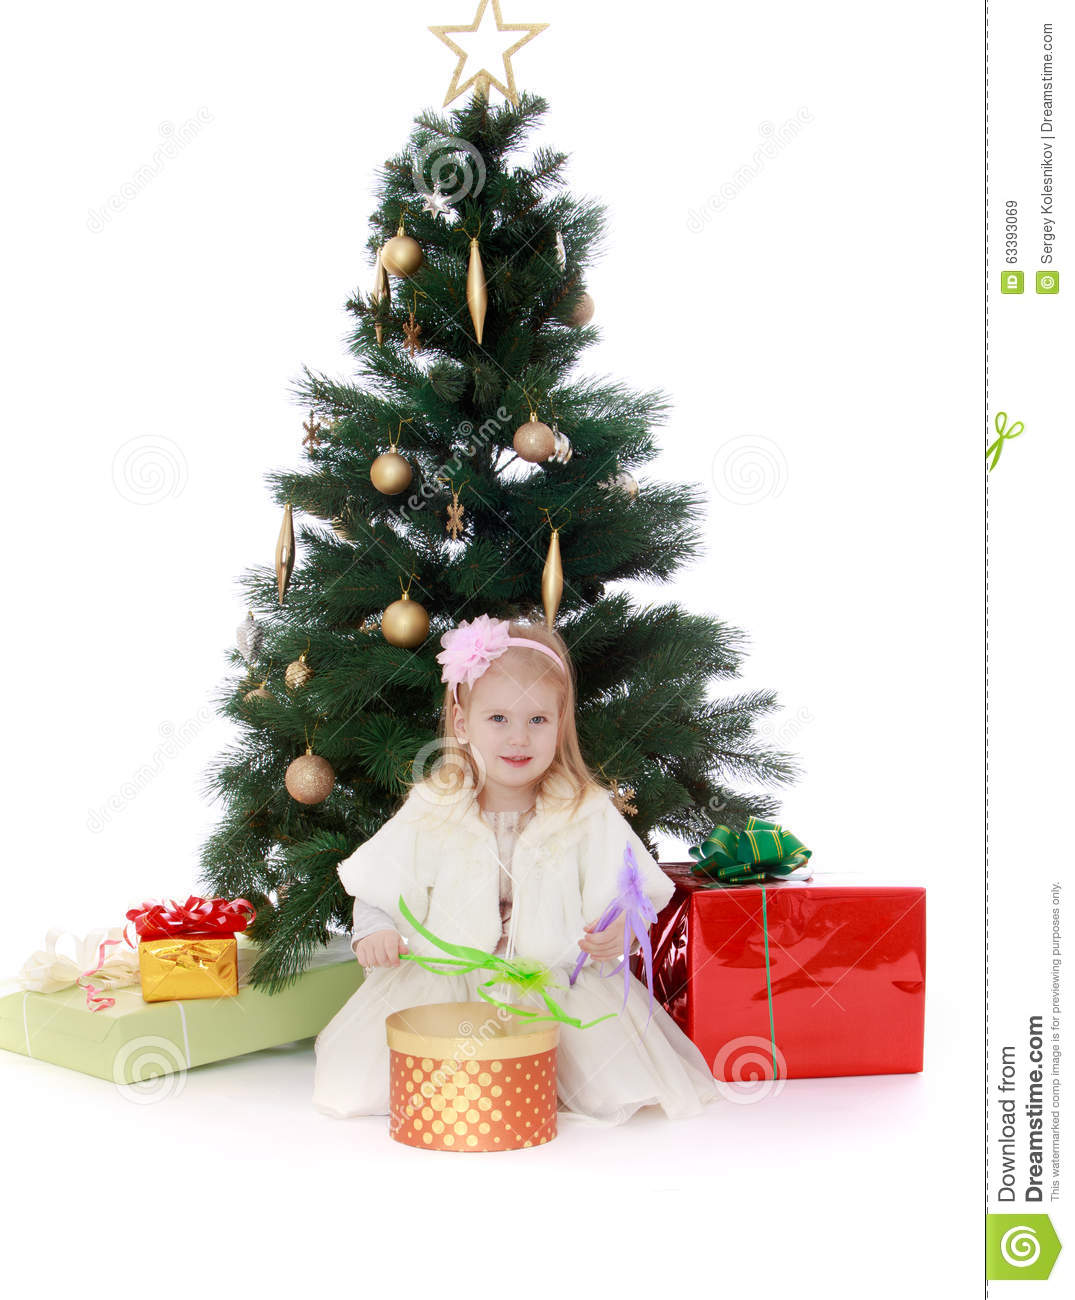 Little Girl Christmas Tree: Little Girl At The Christmas Tree Stock Image